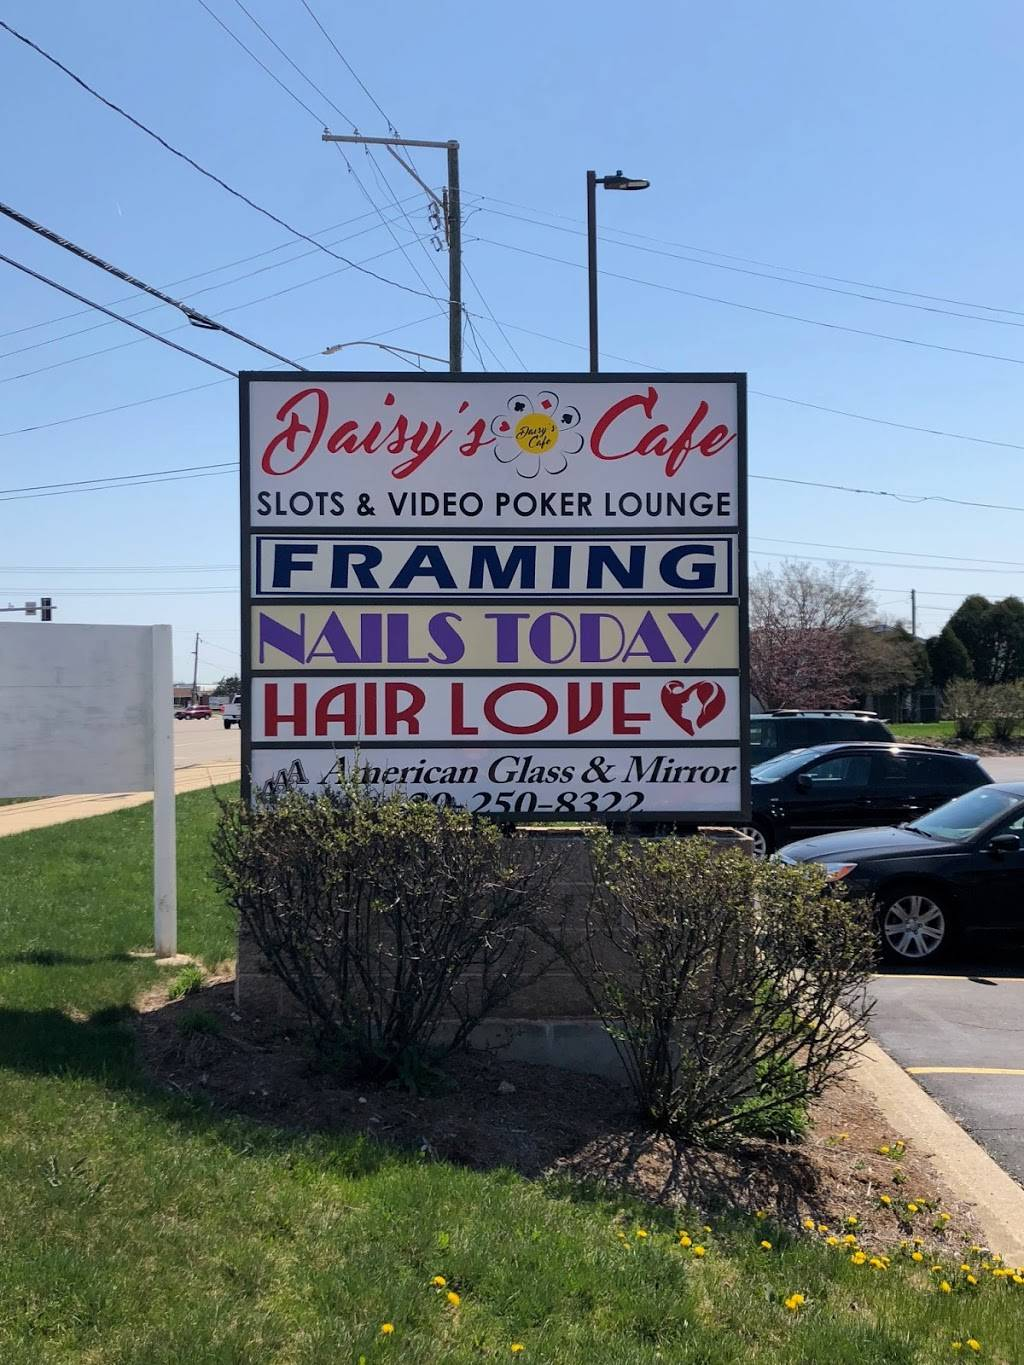 Daisy's Slots & Video Gaming Cafe | cafe | 1240 W Irving Park Rd, Itasca, IL 60143, USA | 8477736172 OR +1 847-773-6172